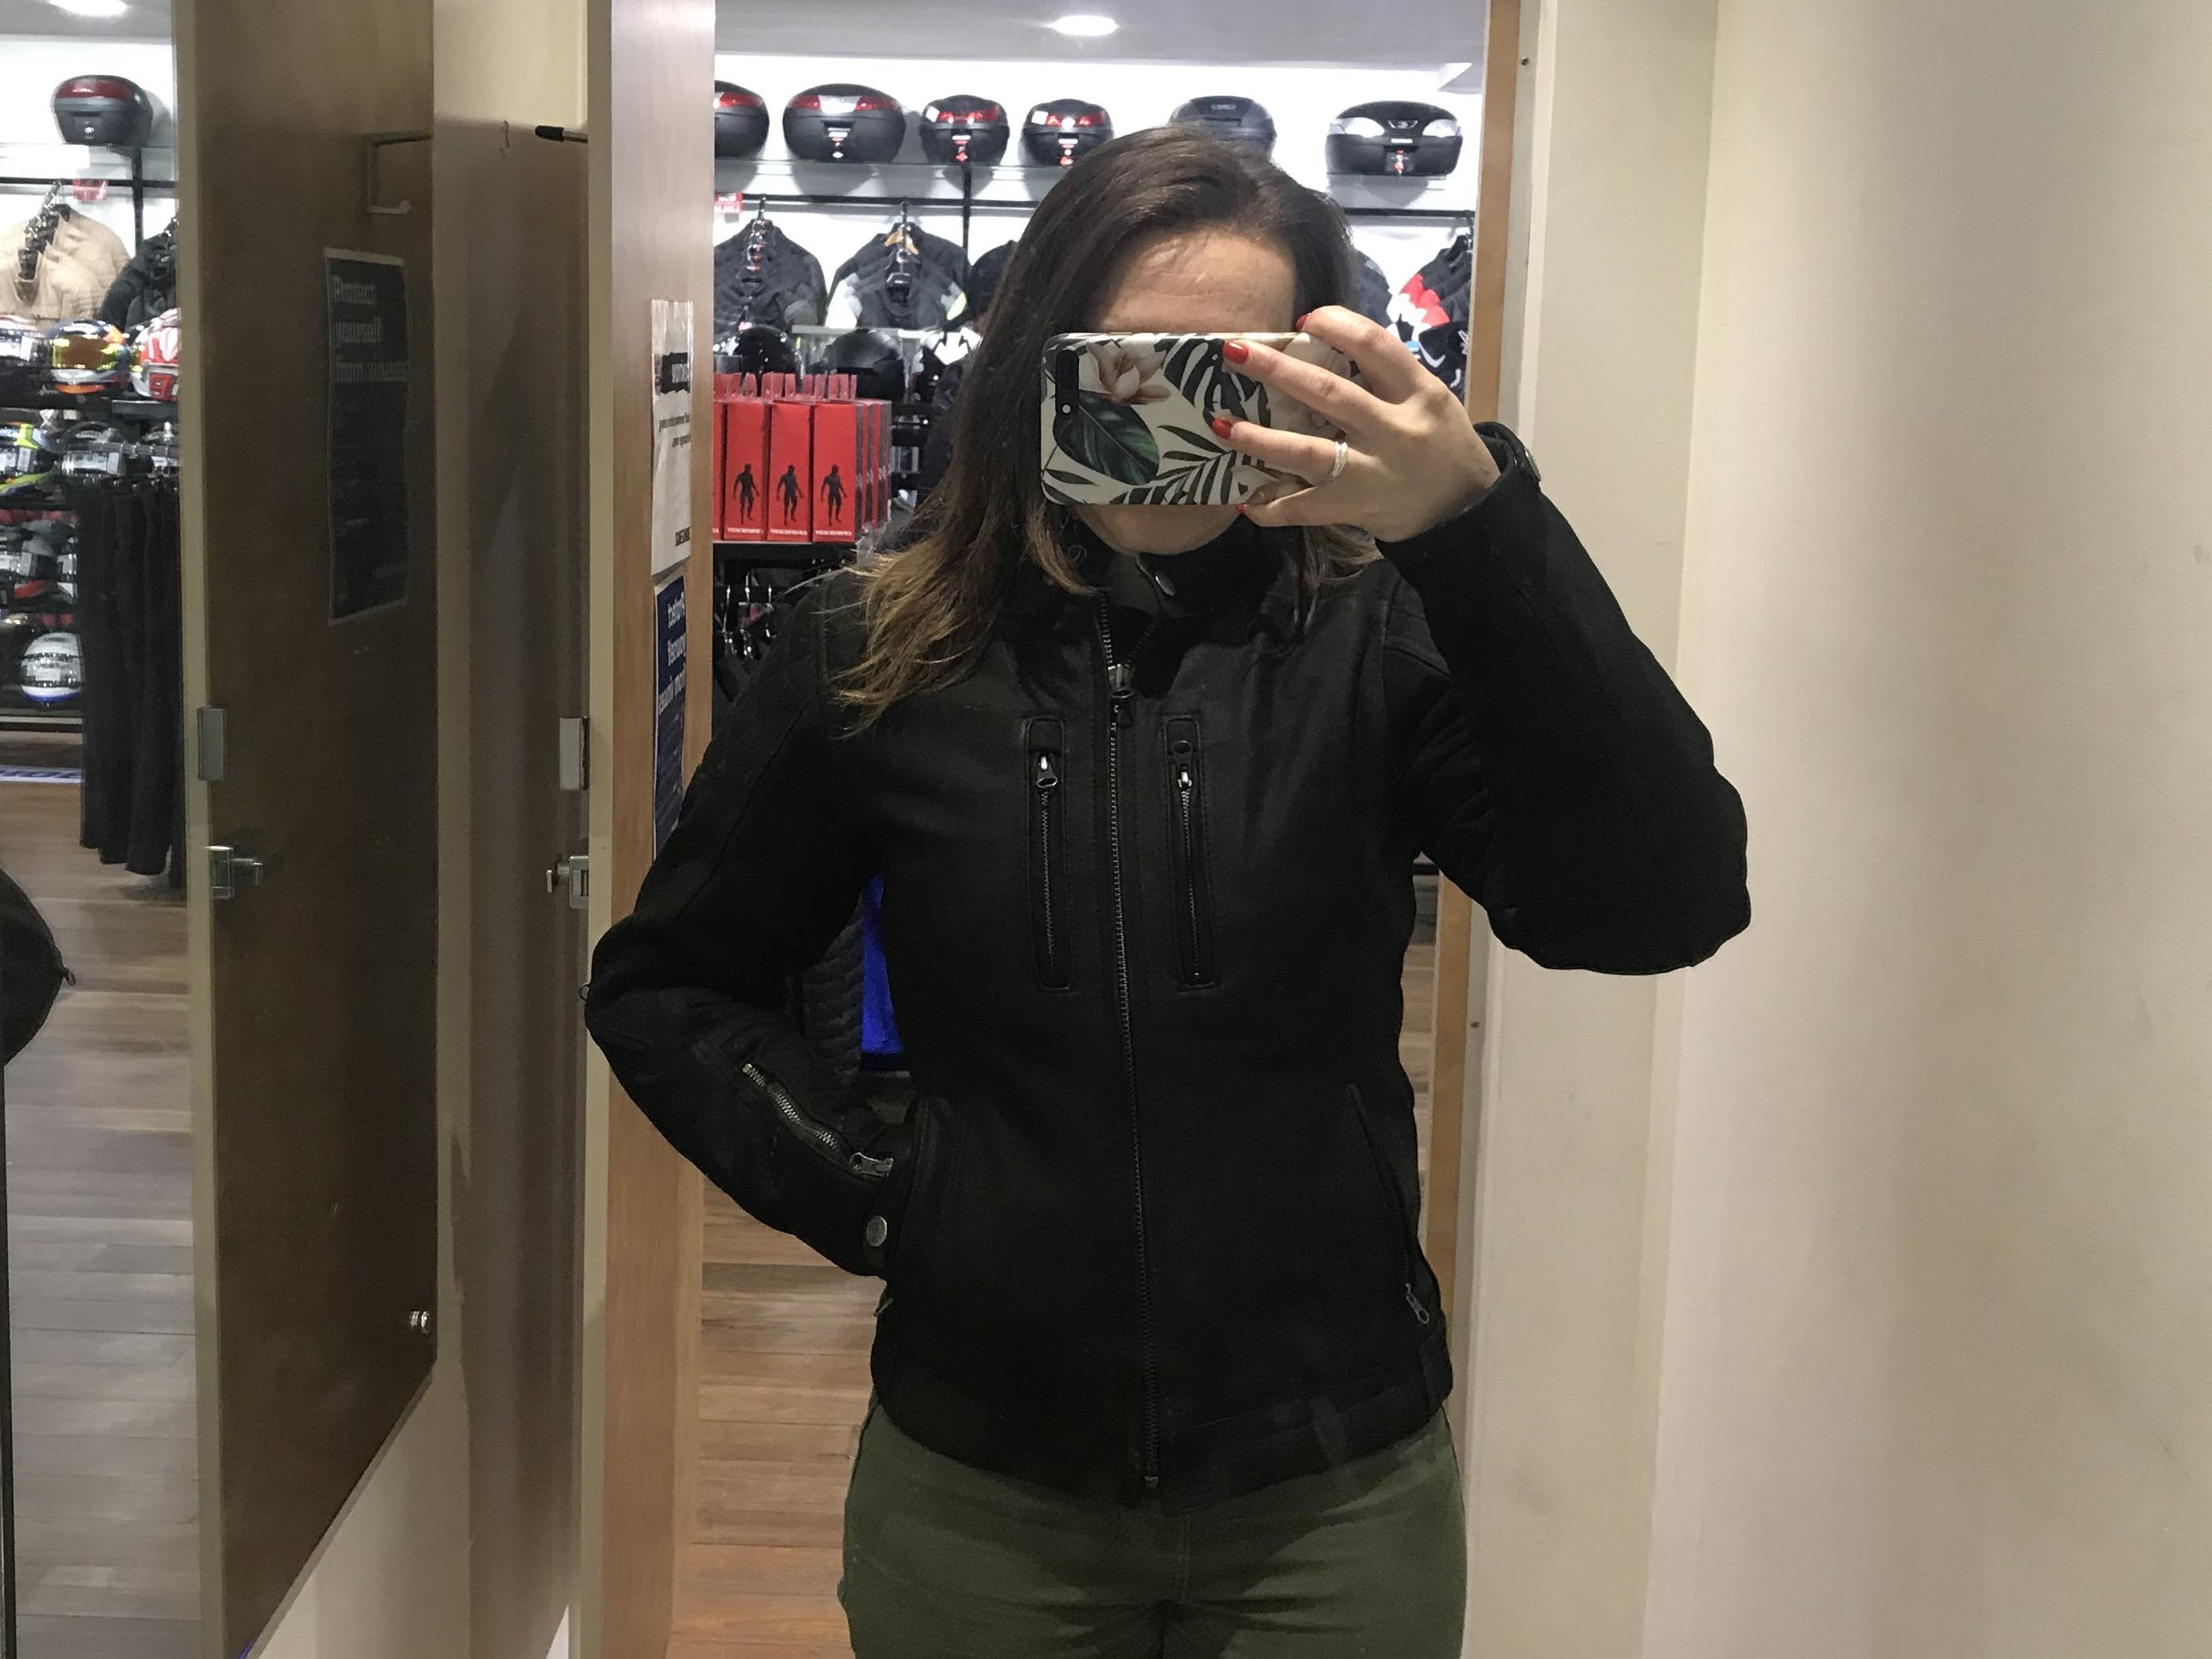 A woman in the Merlin Mia black leather motorcycle jacket